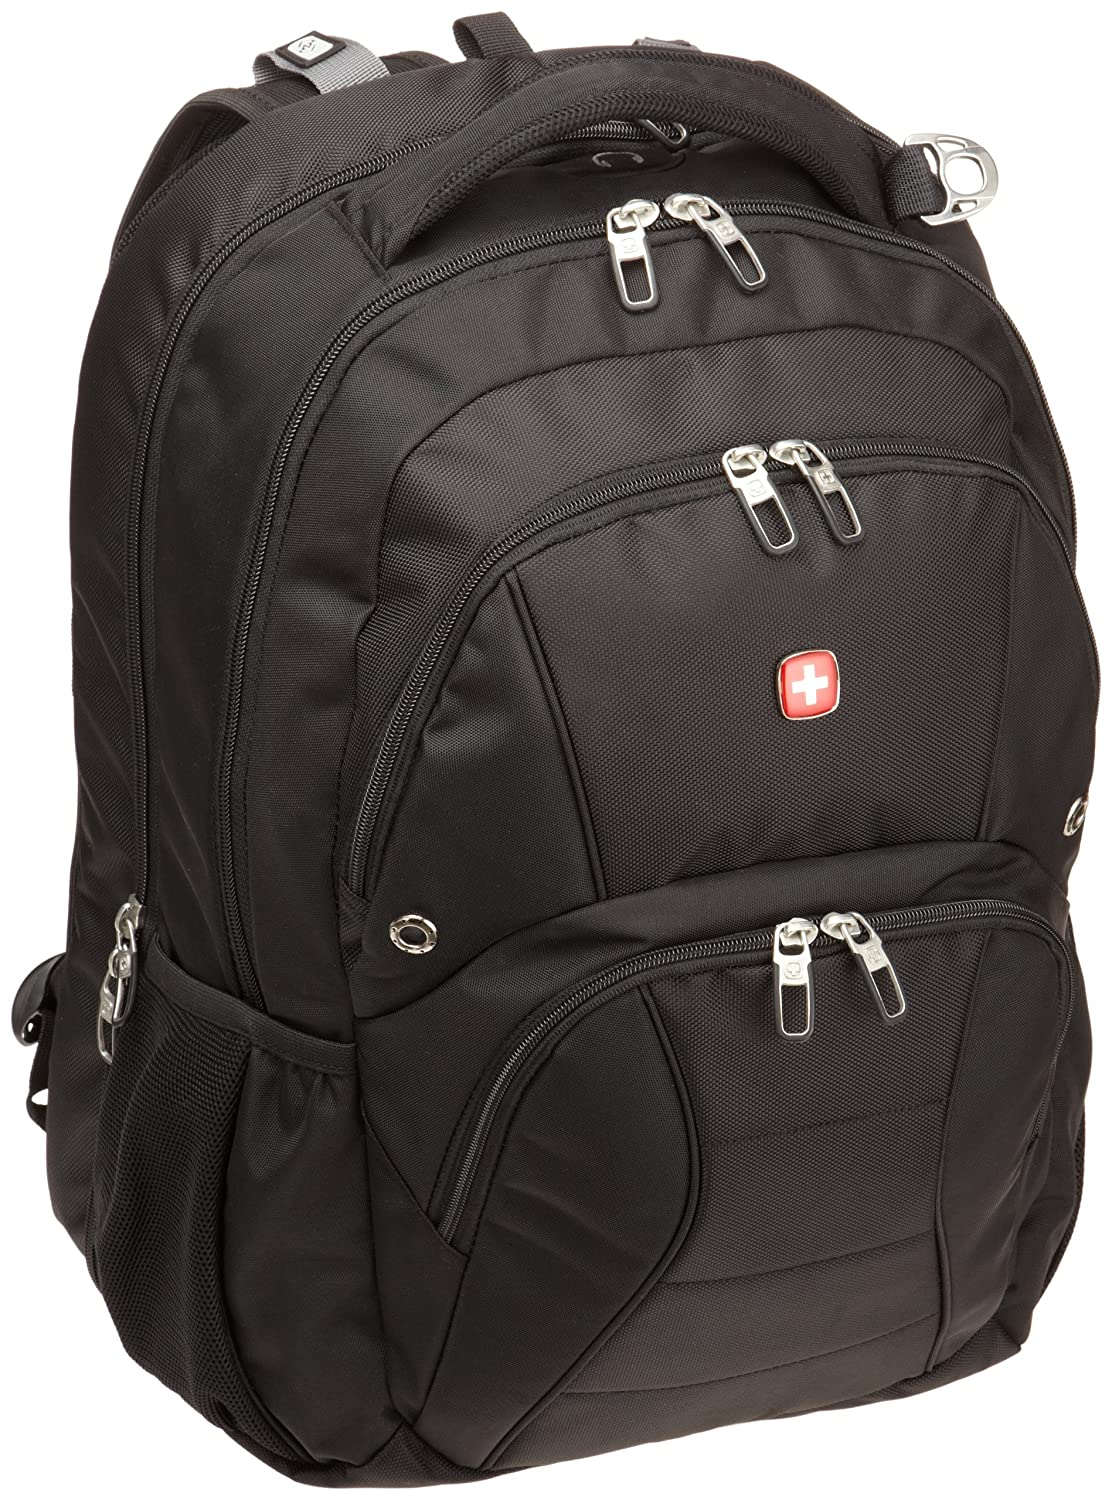 SwissGear SA1908 ScanSmart Backpack (Black) Fits Most 17 Inch Laptops $49.99